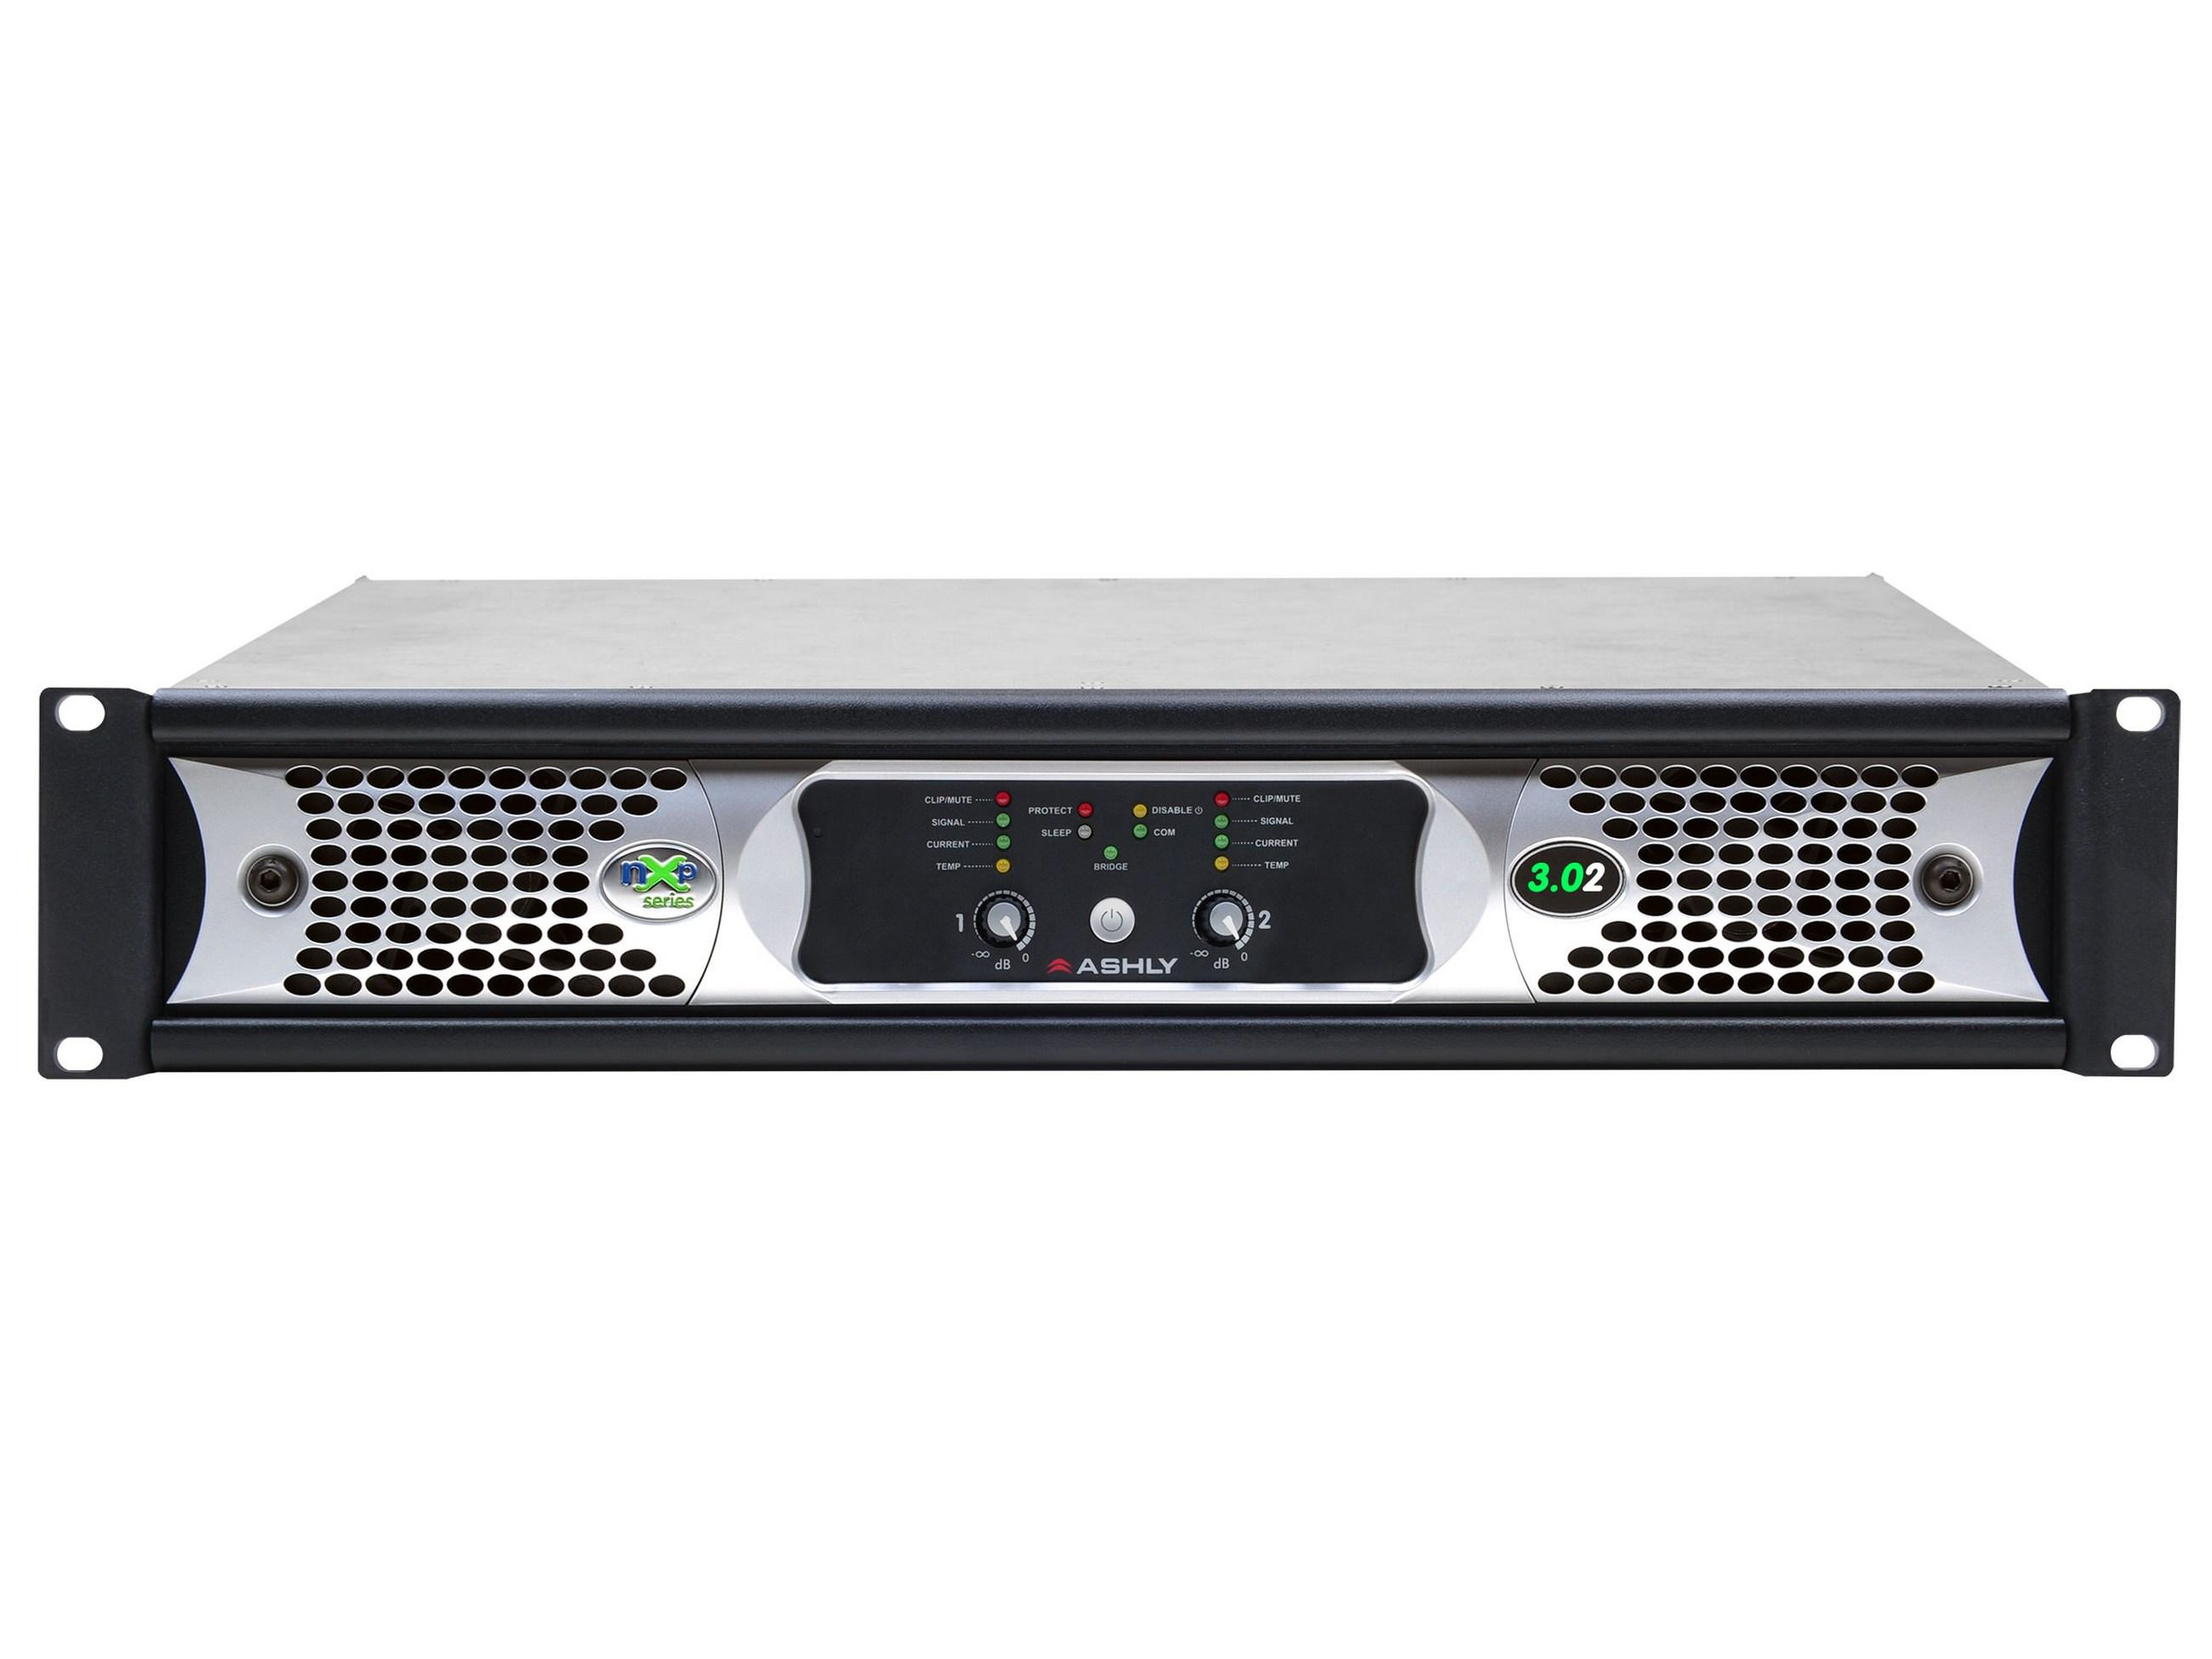 Ashly nXp3.02 Network Power Amplifier 2 x 3000 Watts/2 Ohms with Protea DSP